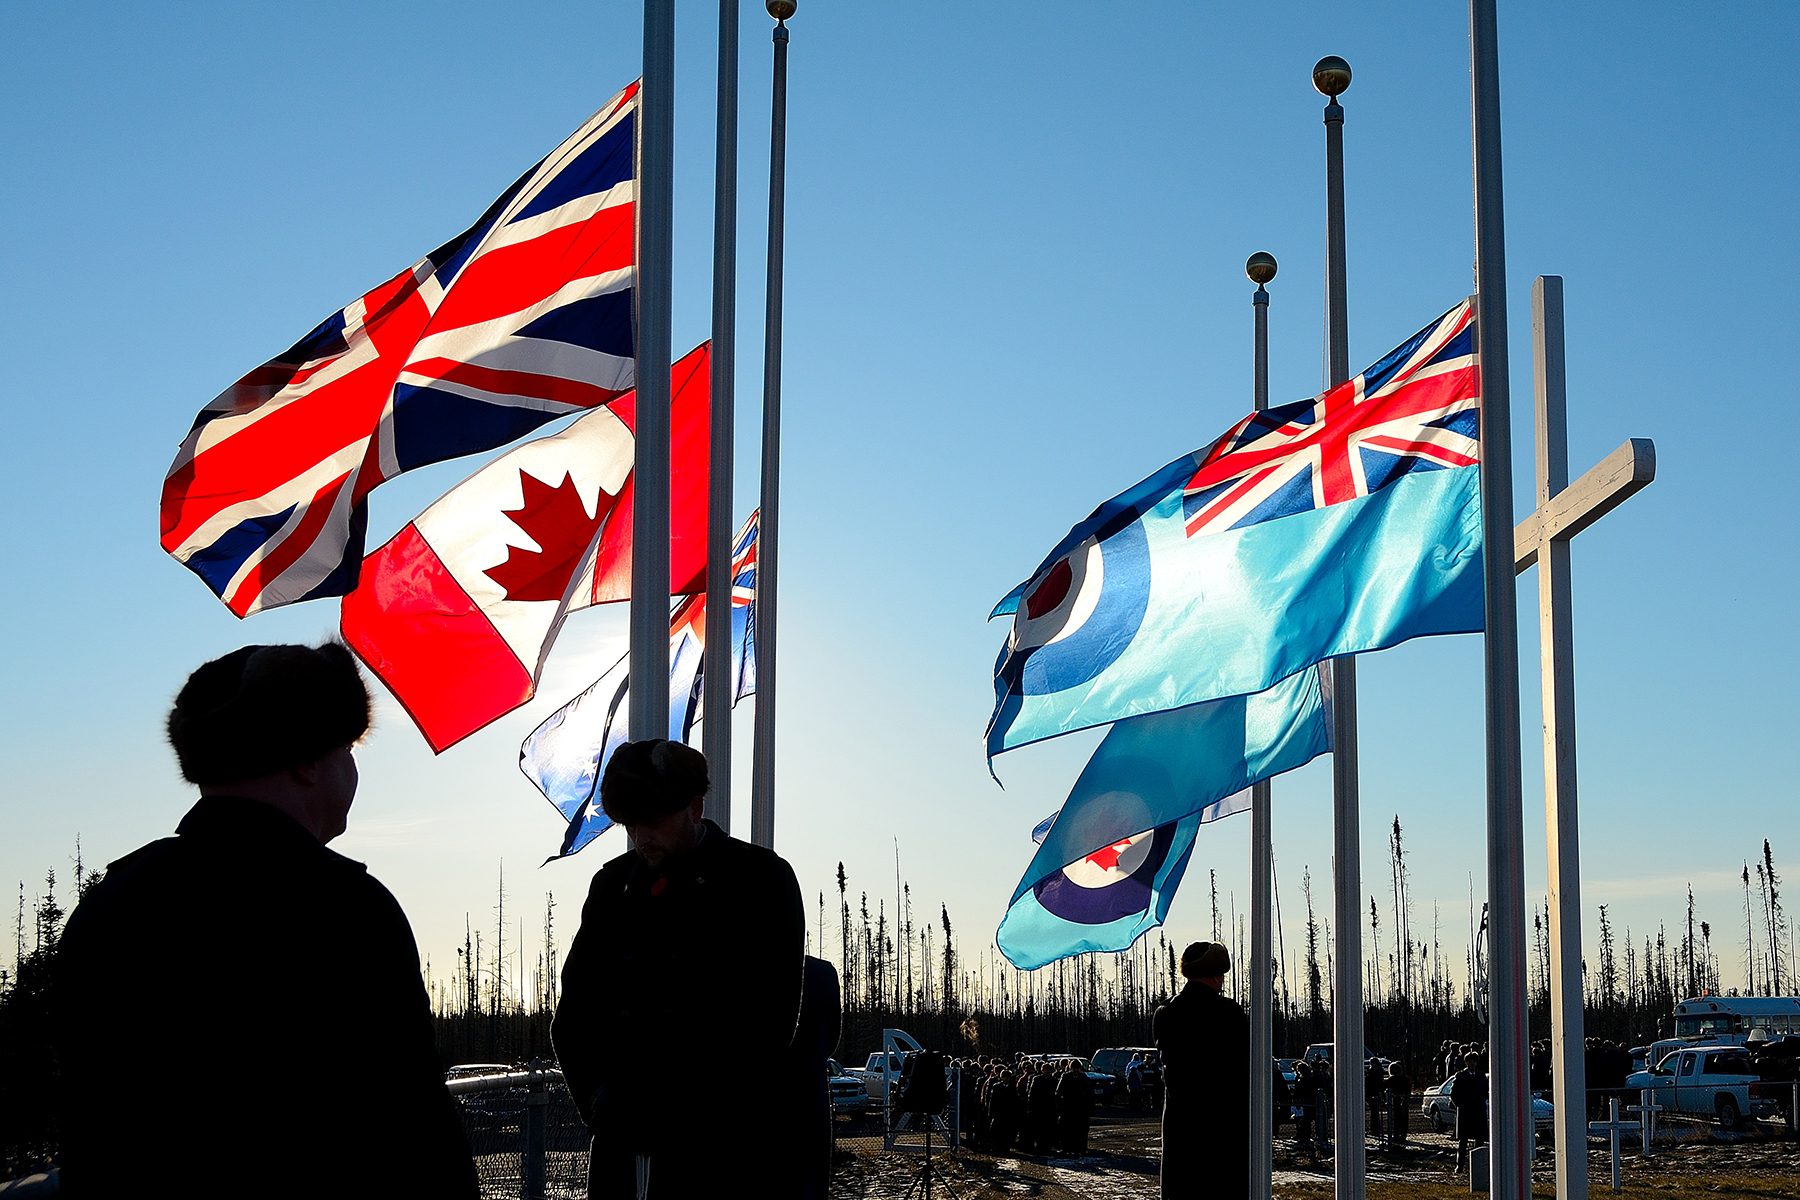 Flags fly at half-staff in the Commonwealth Cemetery at 5 Wing Goose Bay, Newfoundland and Labrador, during the Remembrance Day ceremony held on November 11, 2015. PHOTO: Master Corporal Krista Blizzard